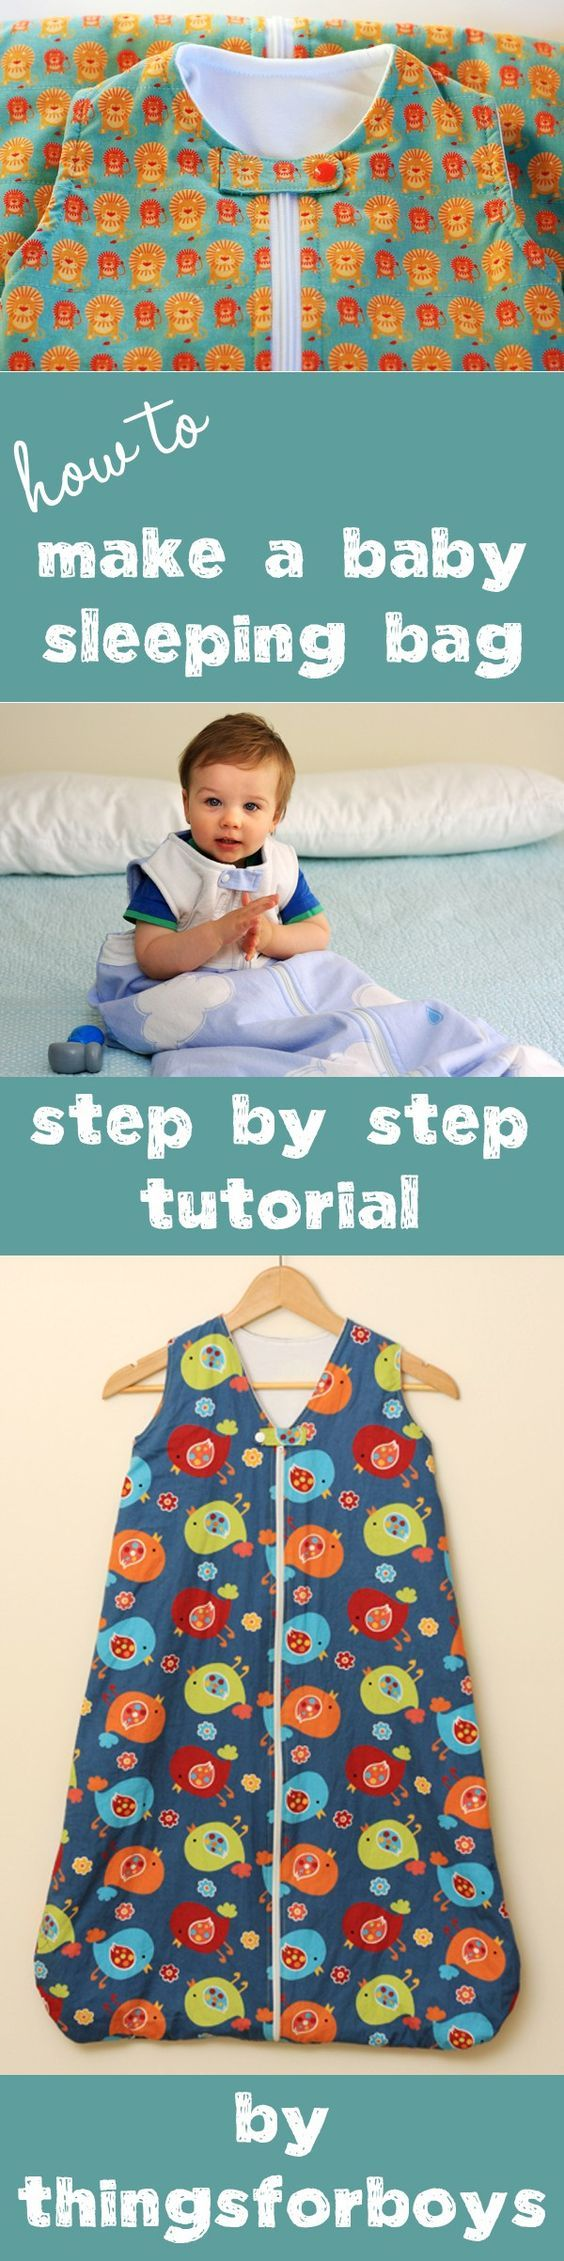 How To Make A Baby Sleep Sack Step By Step Tutorial Baby Sleeping Bag Tutorial Baby Sleeping Bag Baby Sleep Sack